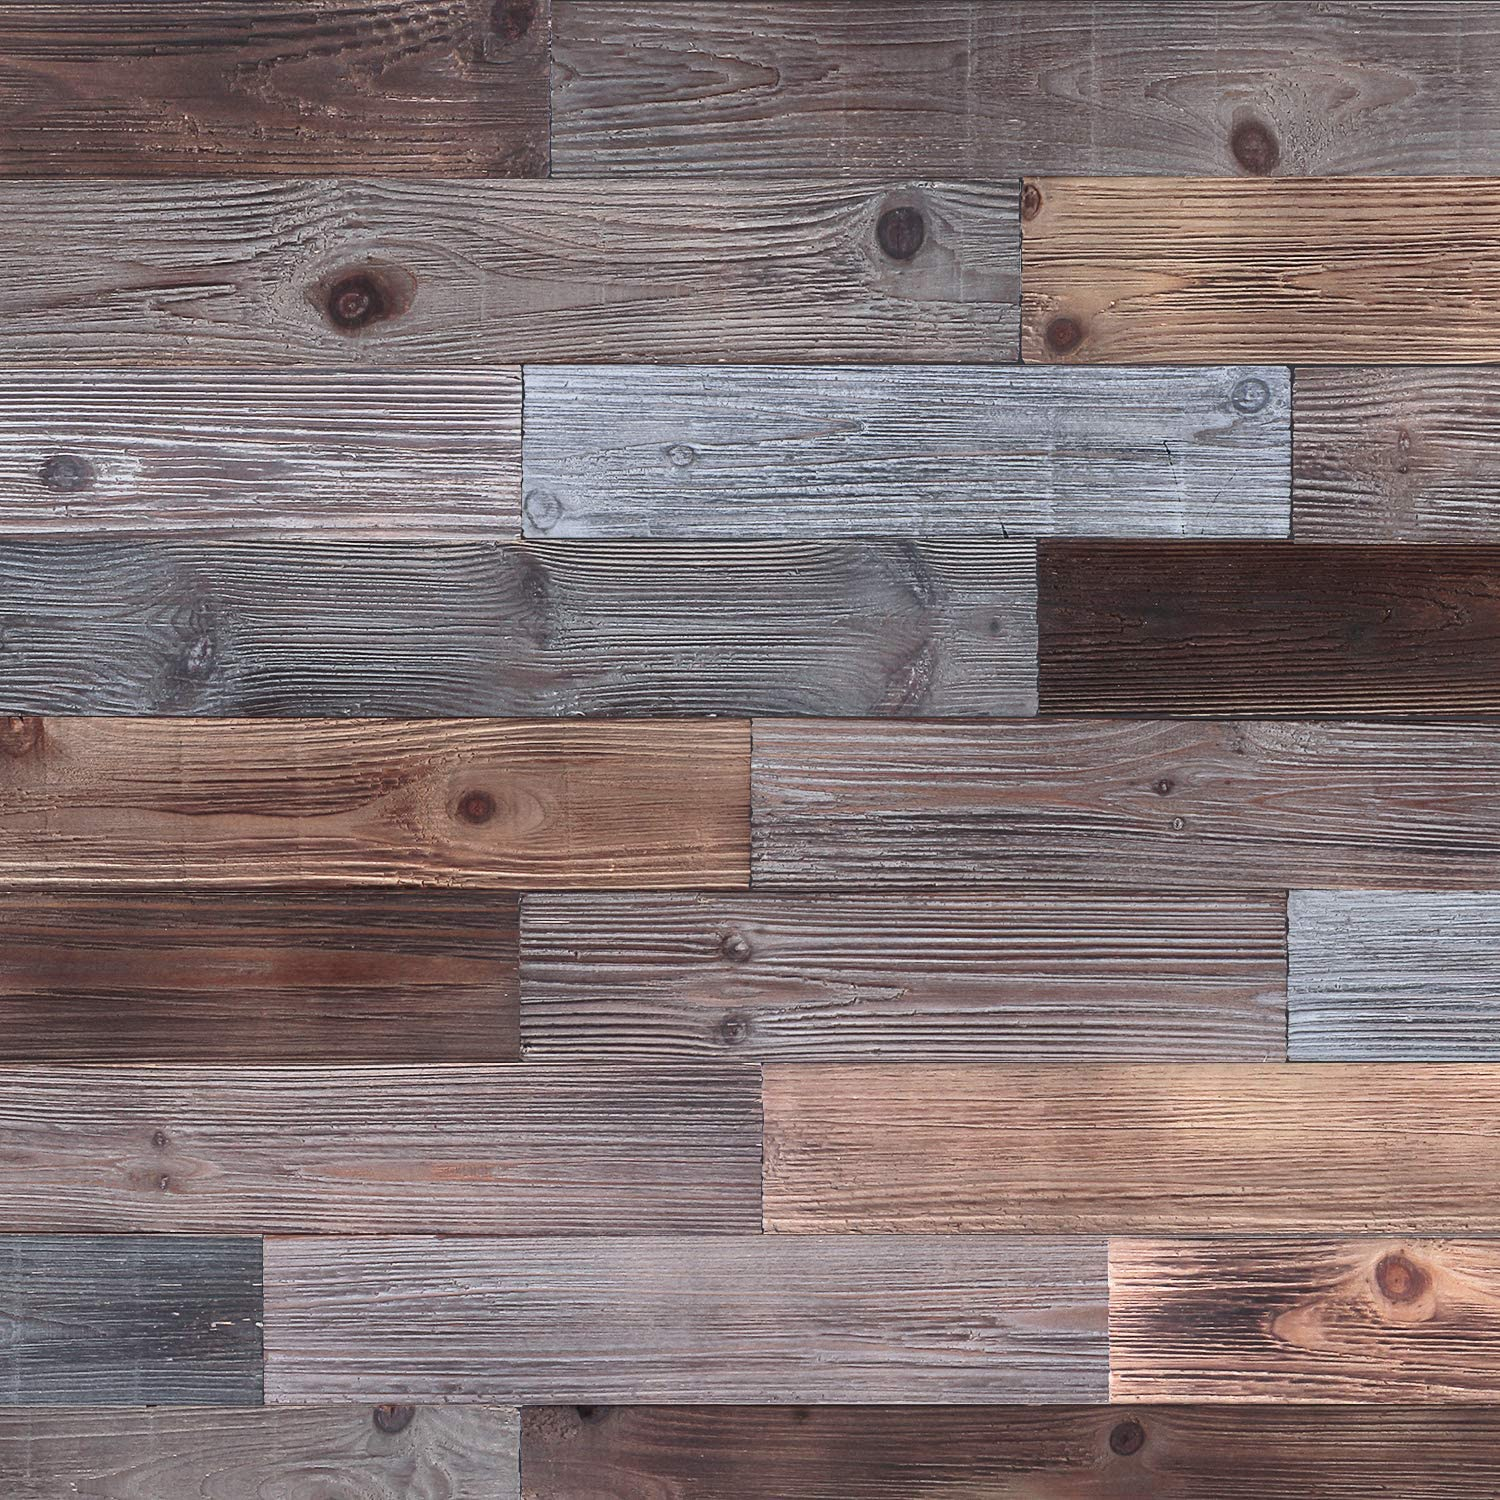 Holydecot Reclaimed Barn Wood Wall Panels - DIY Peel and Stick Easy Installation, 10.6 Sq Ft